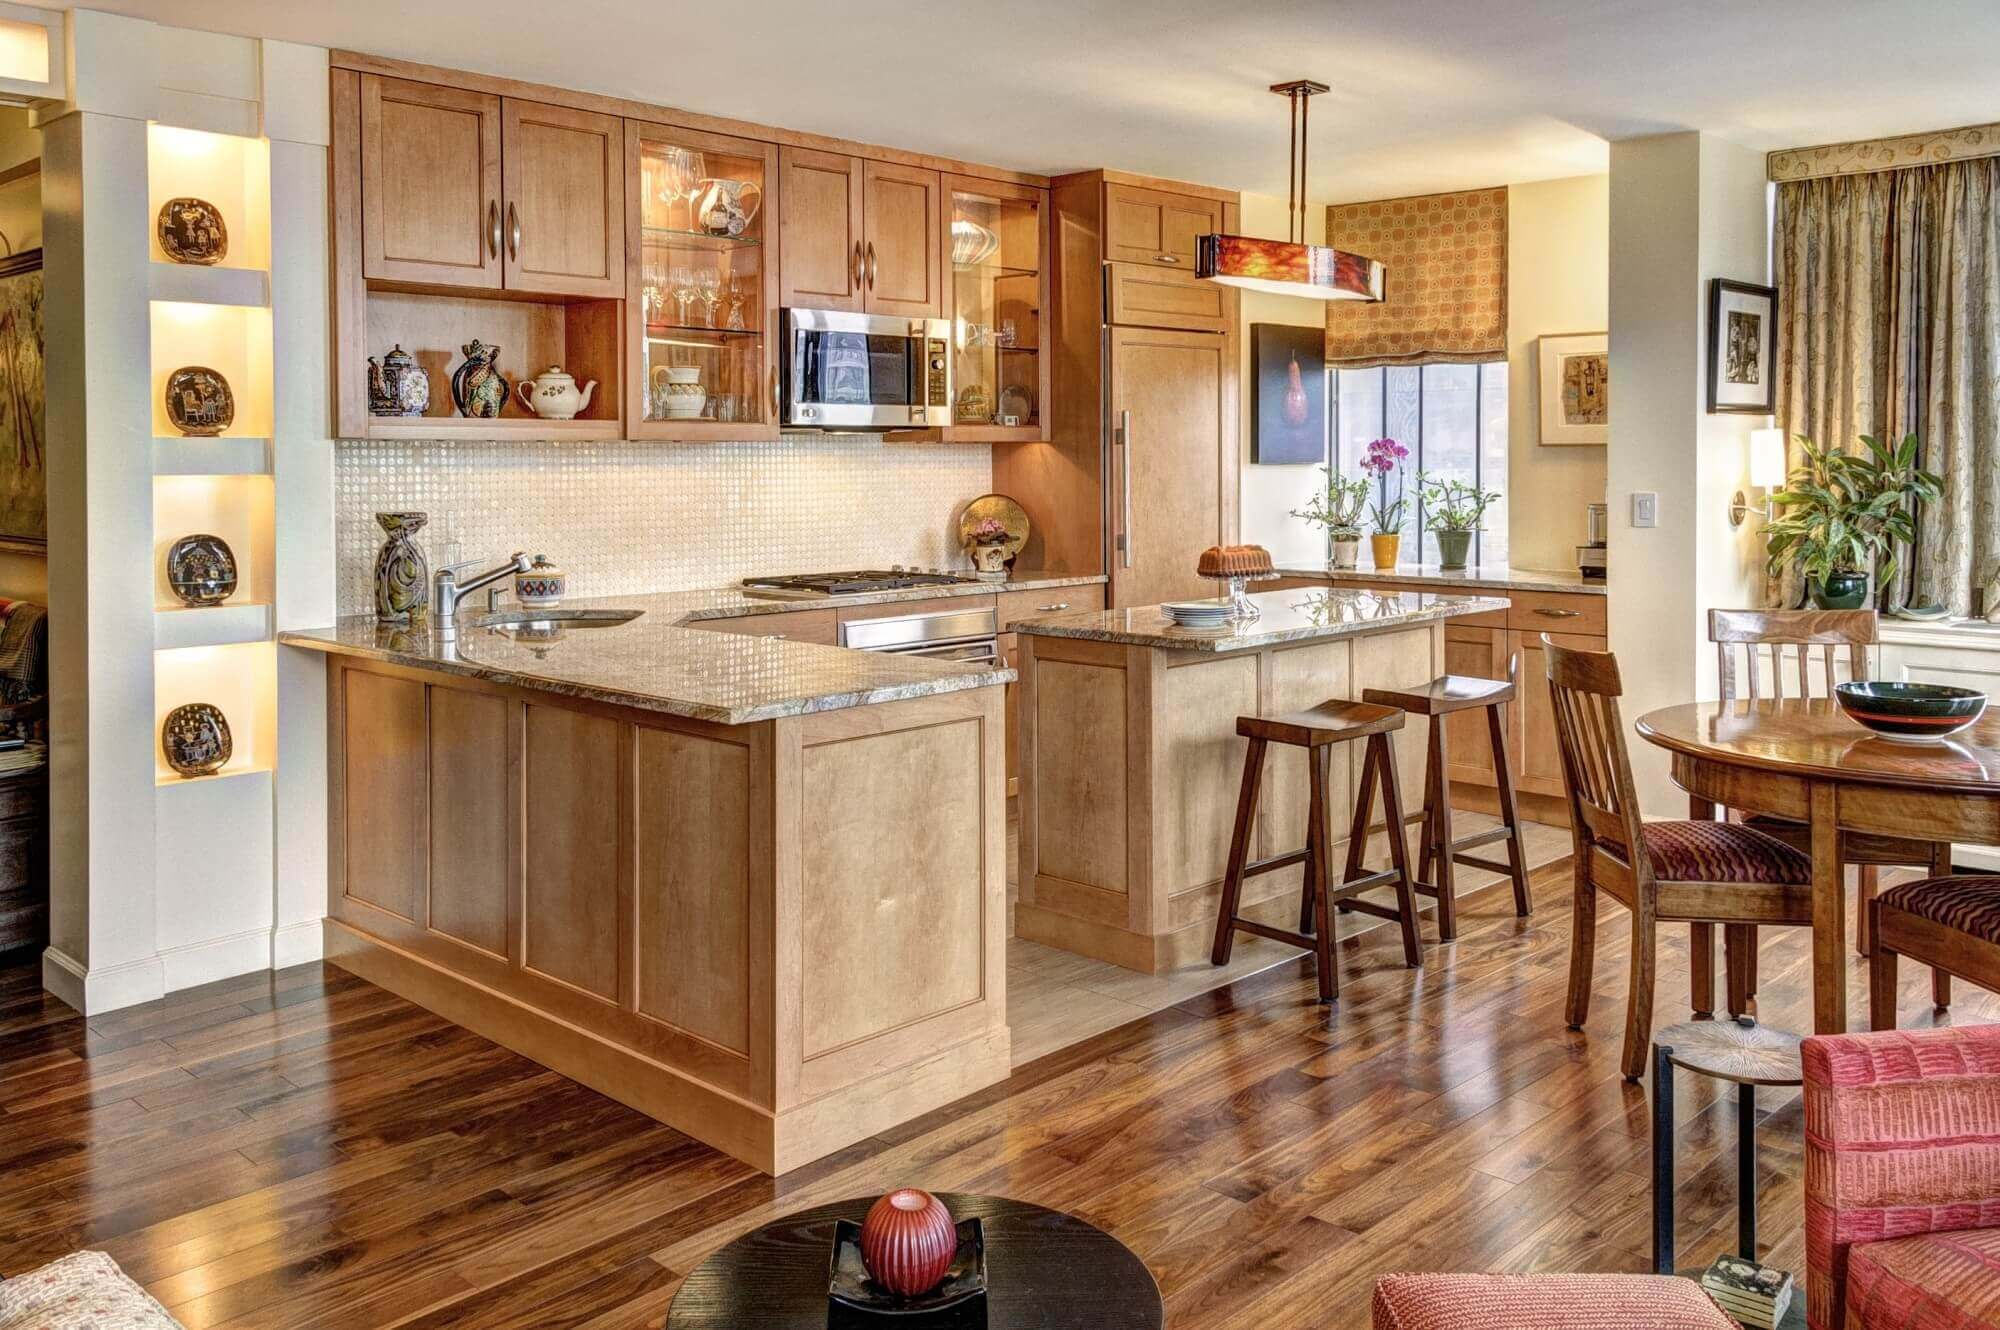 Known for its unique pale gold color, oak is a very tough and hard wood. Its dense grain and coarse makes it highly resistant to damage. This contemporary kitchen with oak cabinets features a wide variety of grain styles, thanks to the natural variations in the wood grain